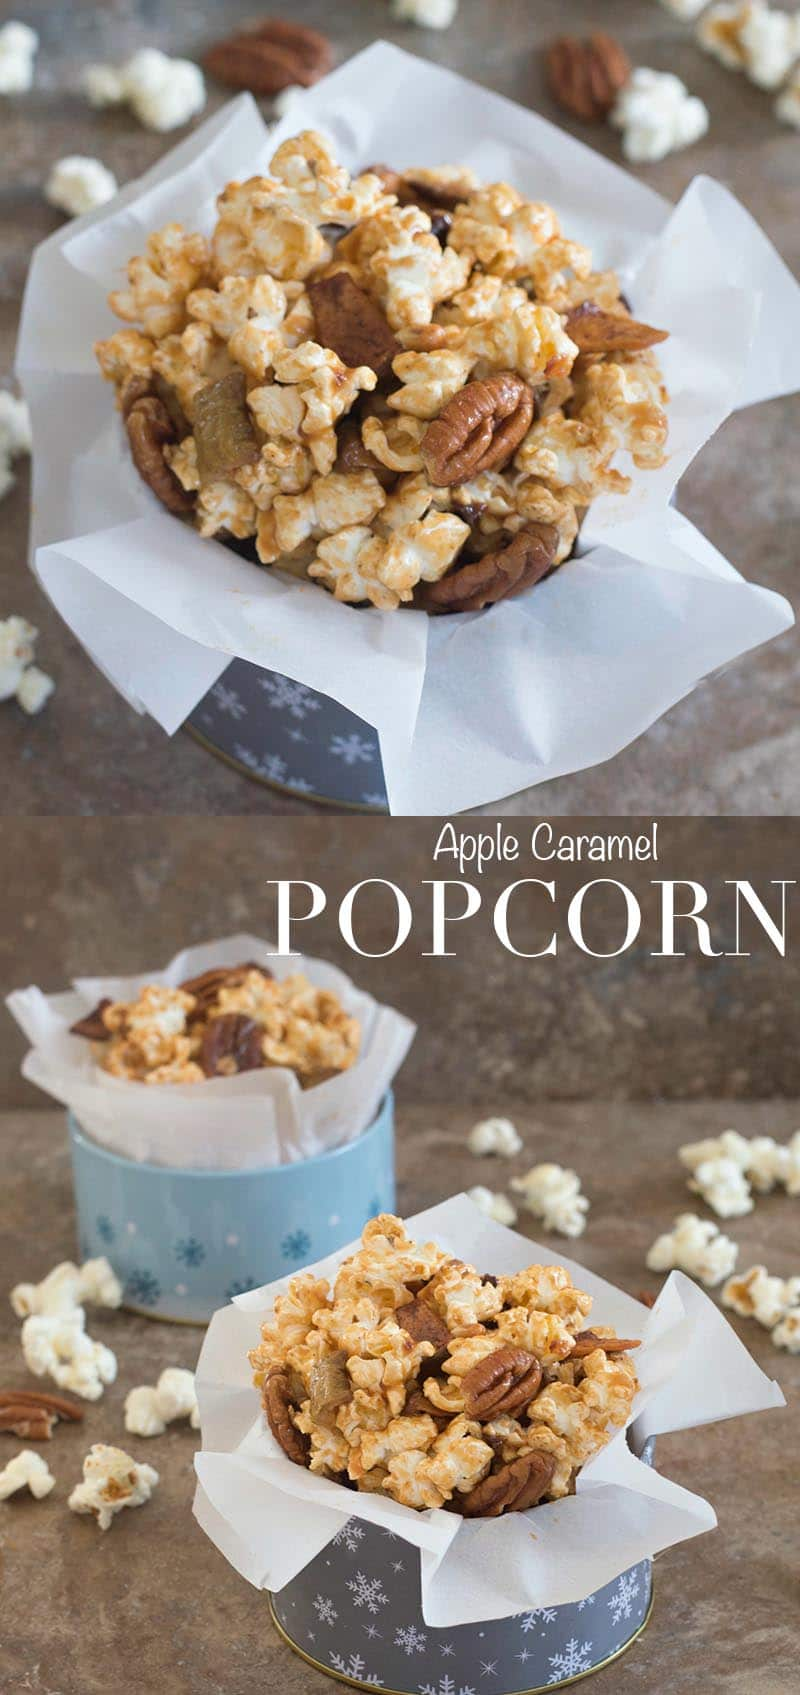 Take your popcorn to a whole new level. Caramel popcorn is easy to make. Add hot caramel, pecans & apple chips and serve it on movie nights or game nights @popsecret @walmart